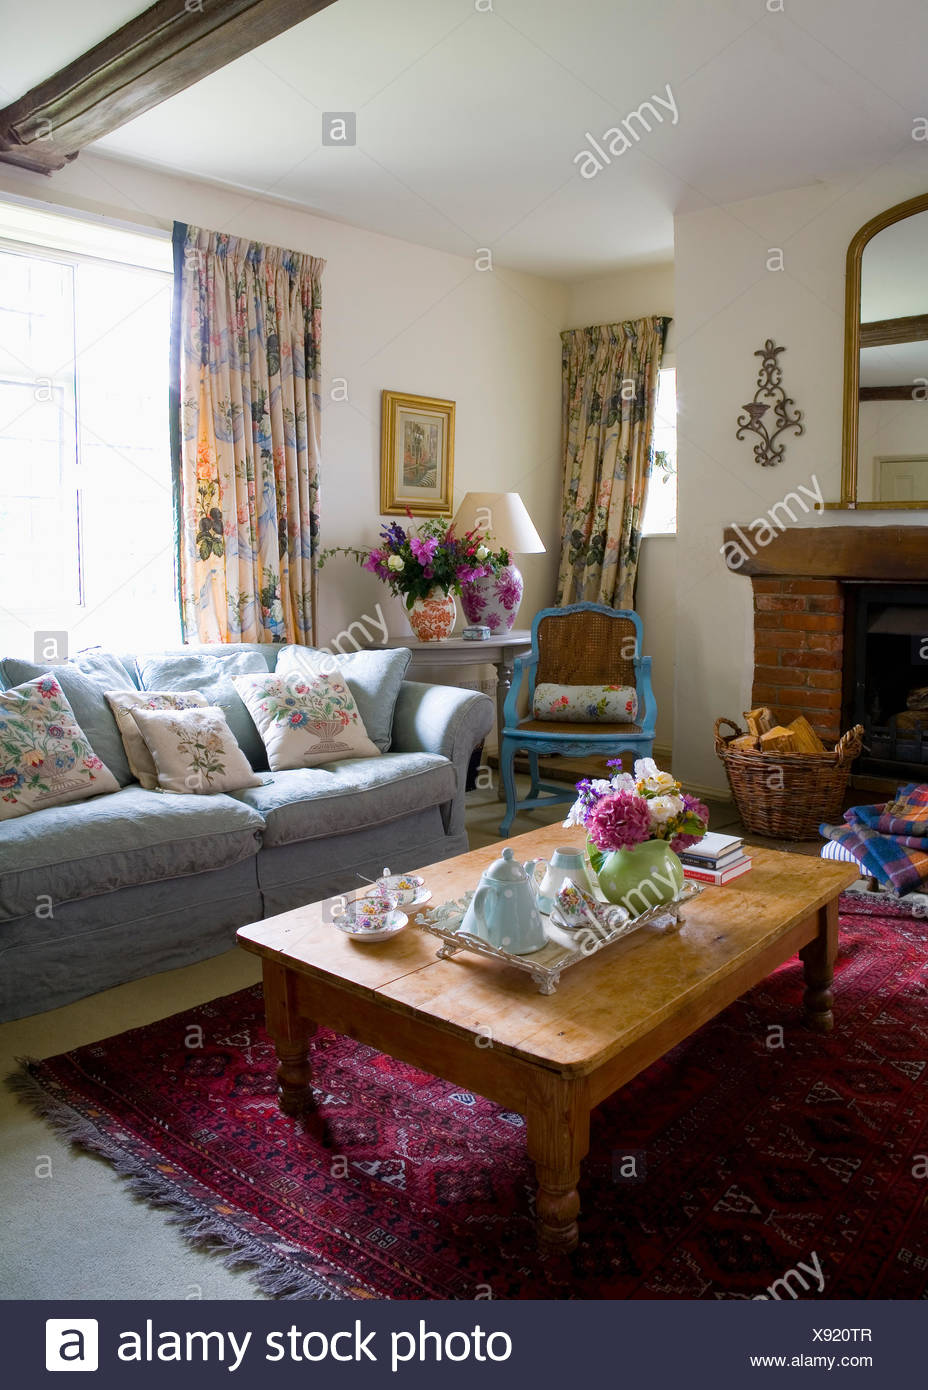 Genial Blue Sofa In Front Of Window With Floral Curtains In Country Living Room  With Vintage Tea Set On Pine Coffee Table